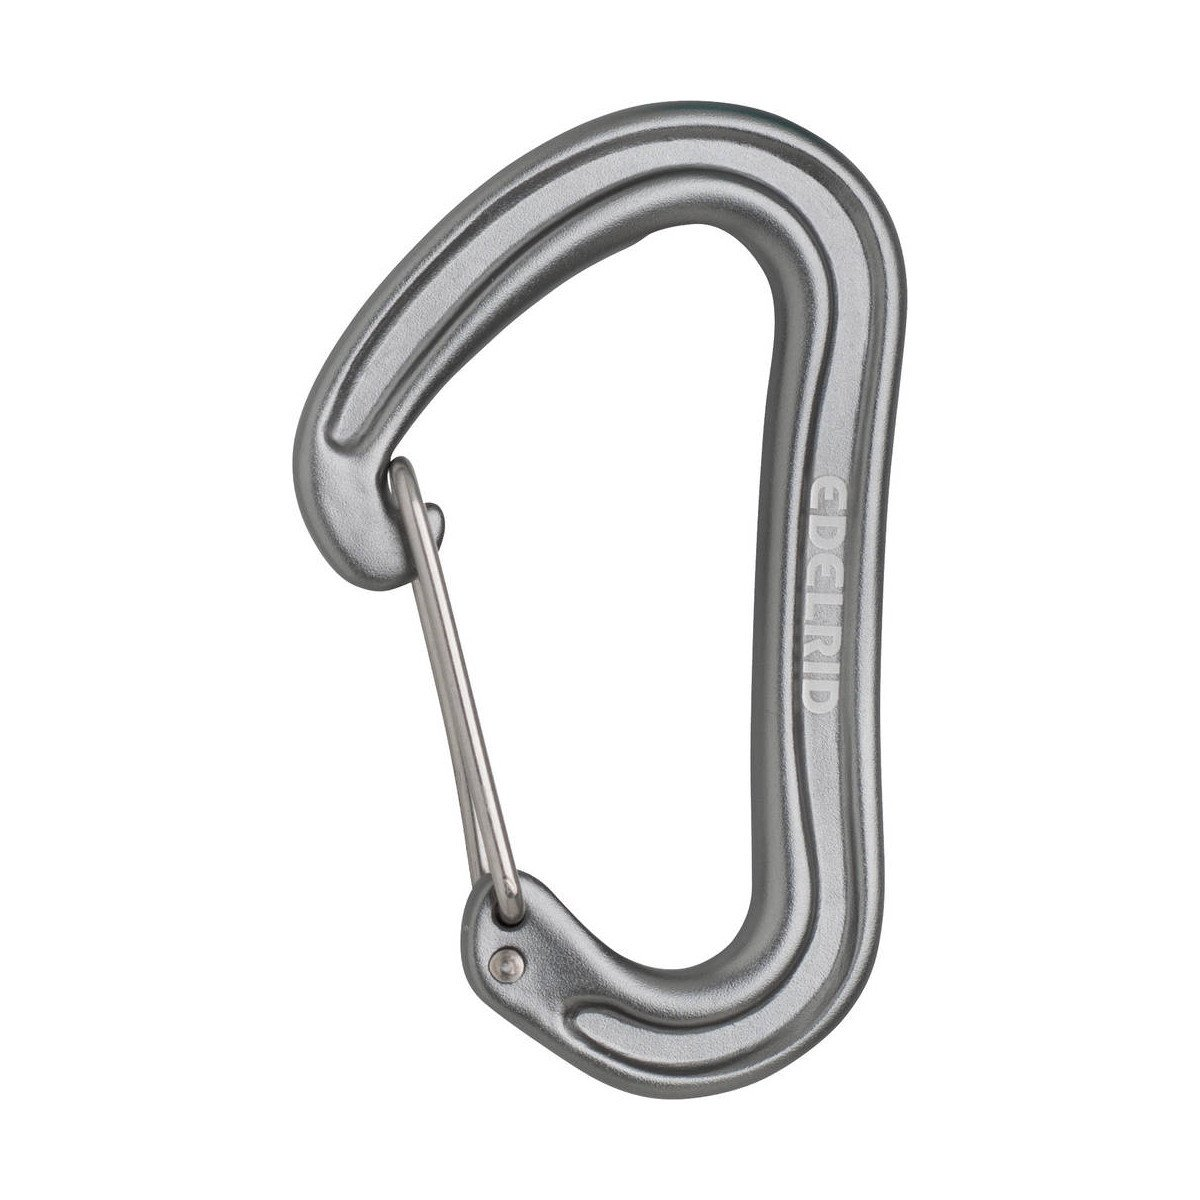 Edelrid Nineteen G climbing carabiner, in gun metal grey colour